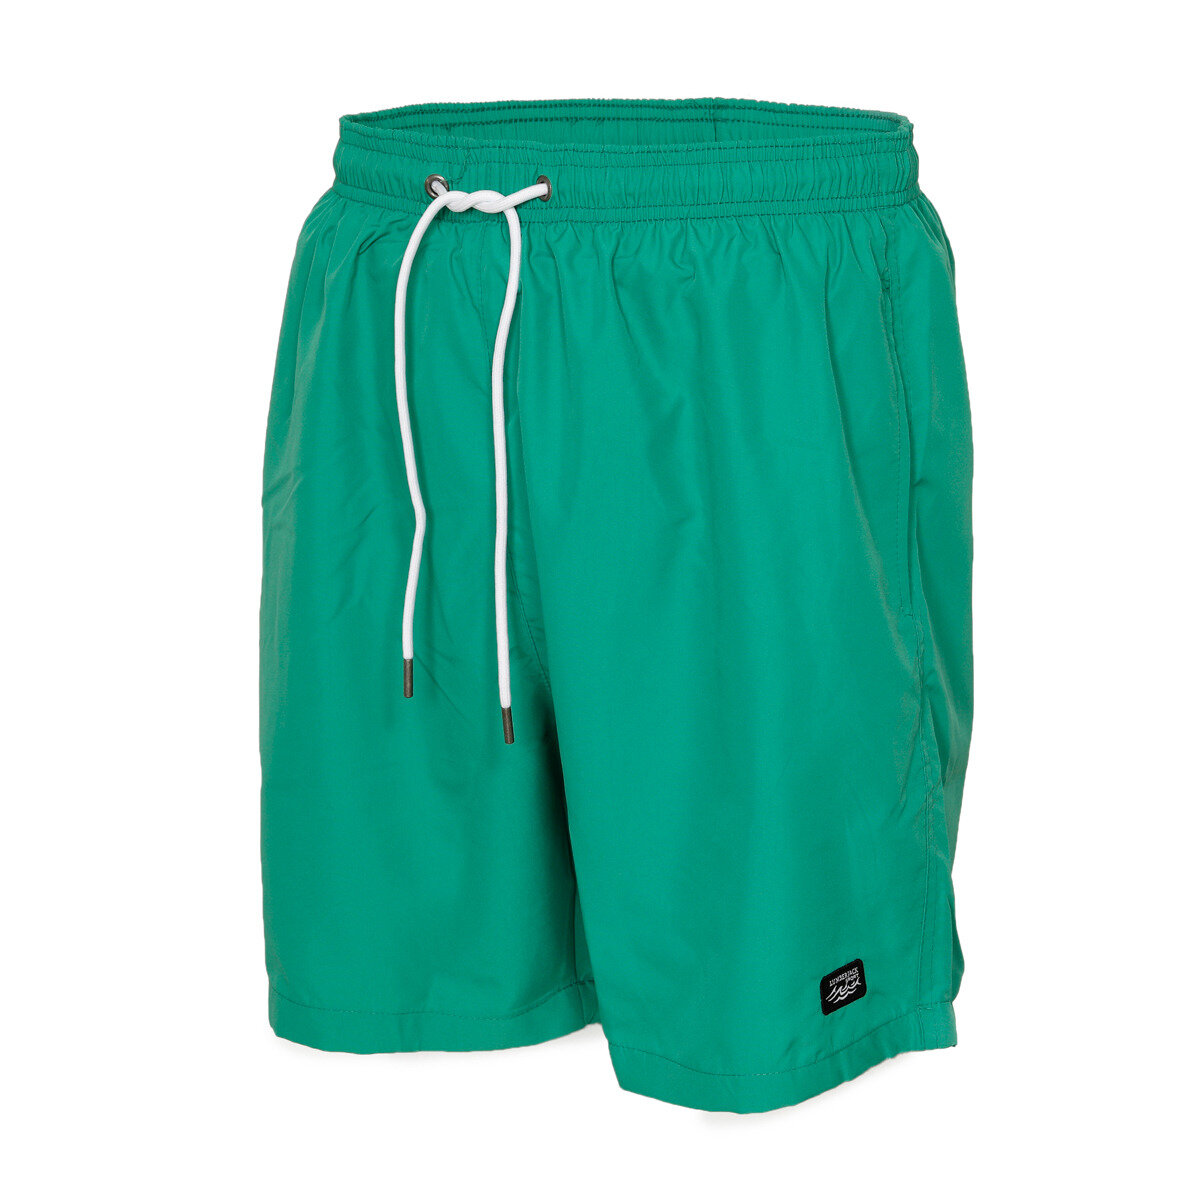 FLO M-1670 FİTZROY SEA SORT Green Male Sea Shorts LUMBERJACK